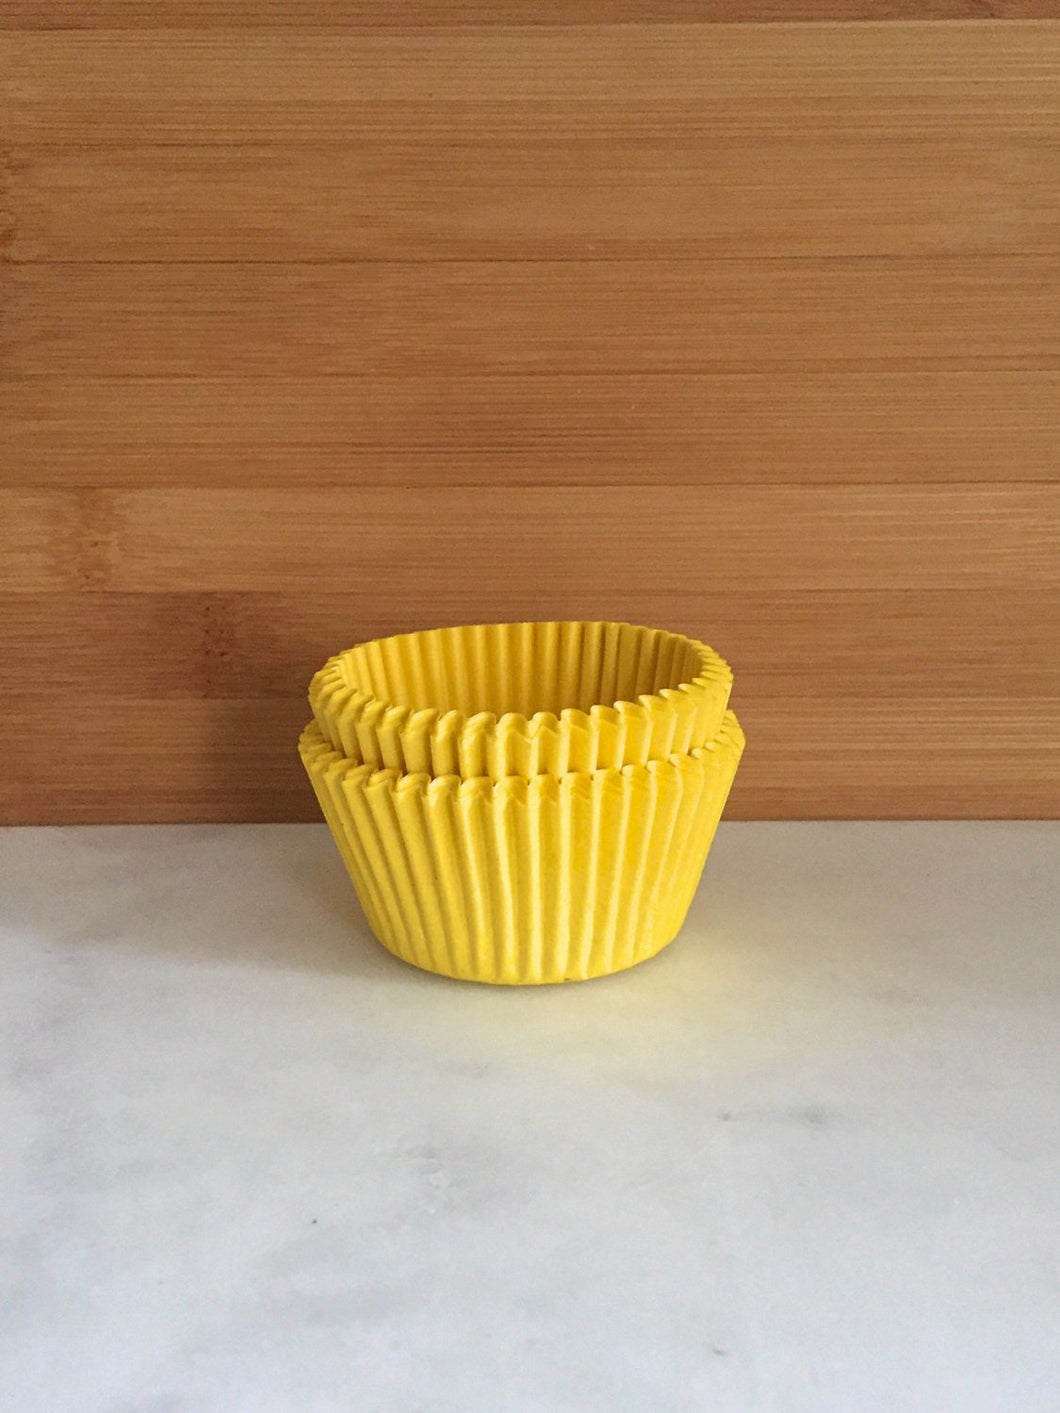 Solid Yellow Cupcake Liners, Standard Sized, Baking Cups (50)